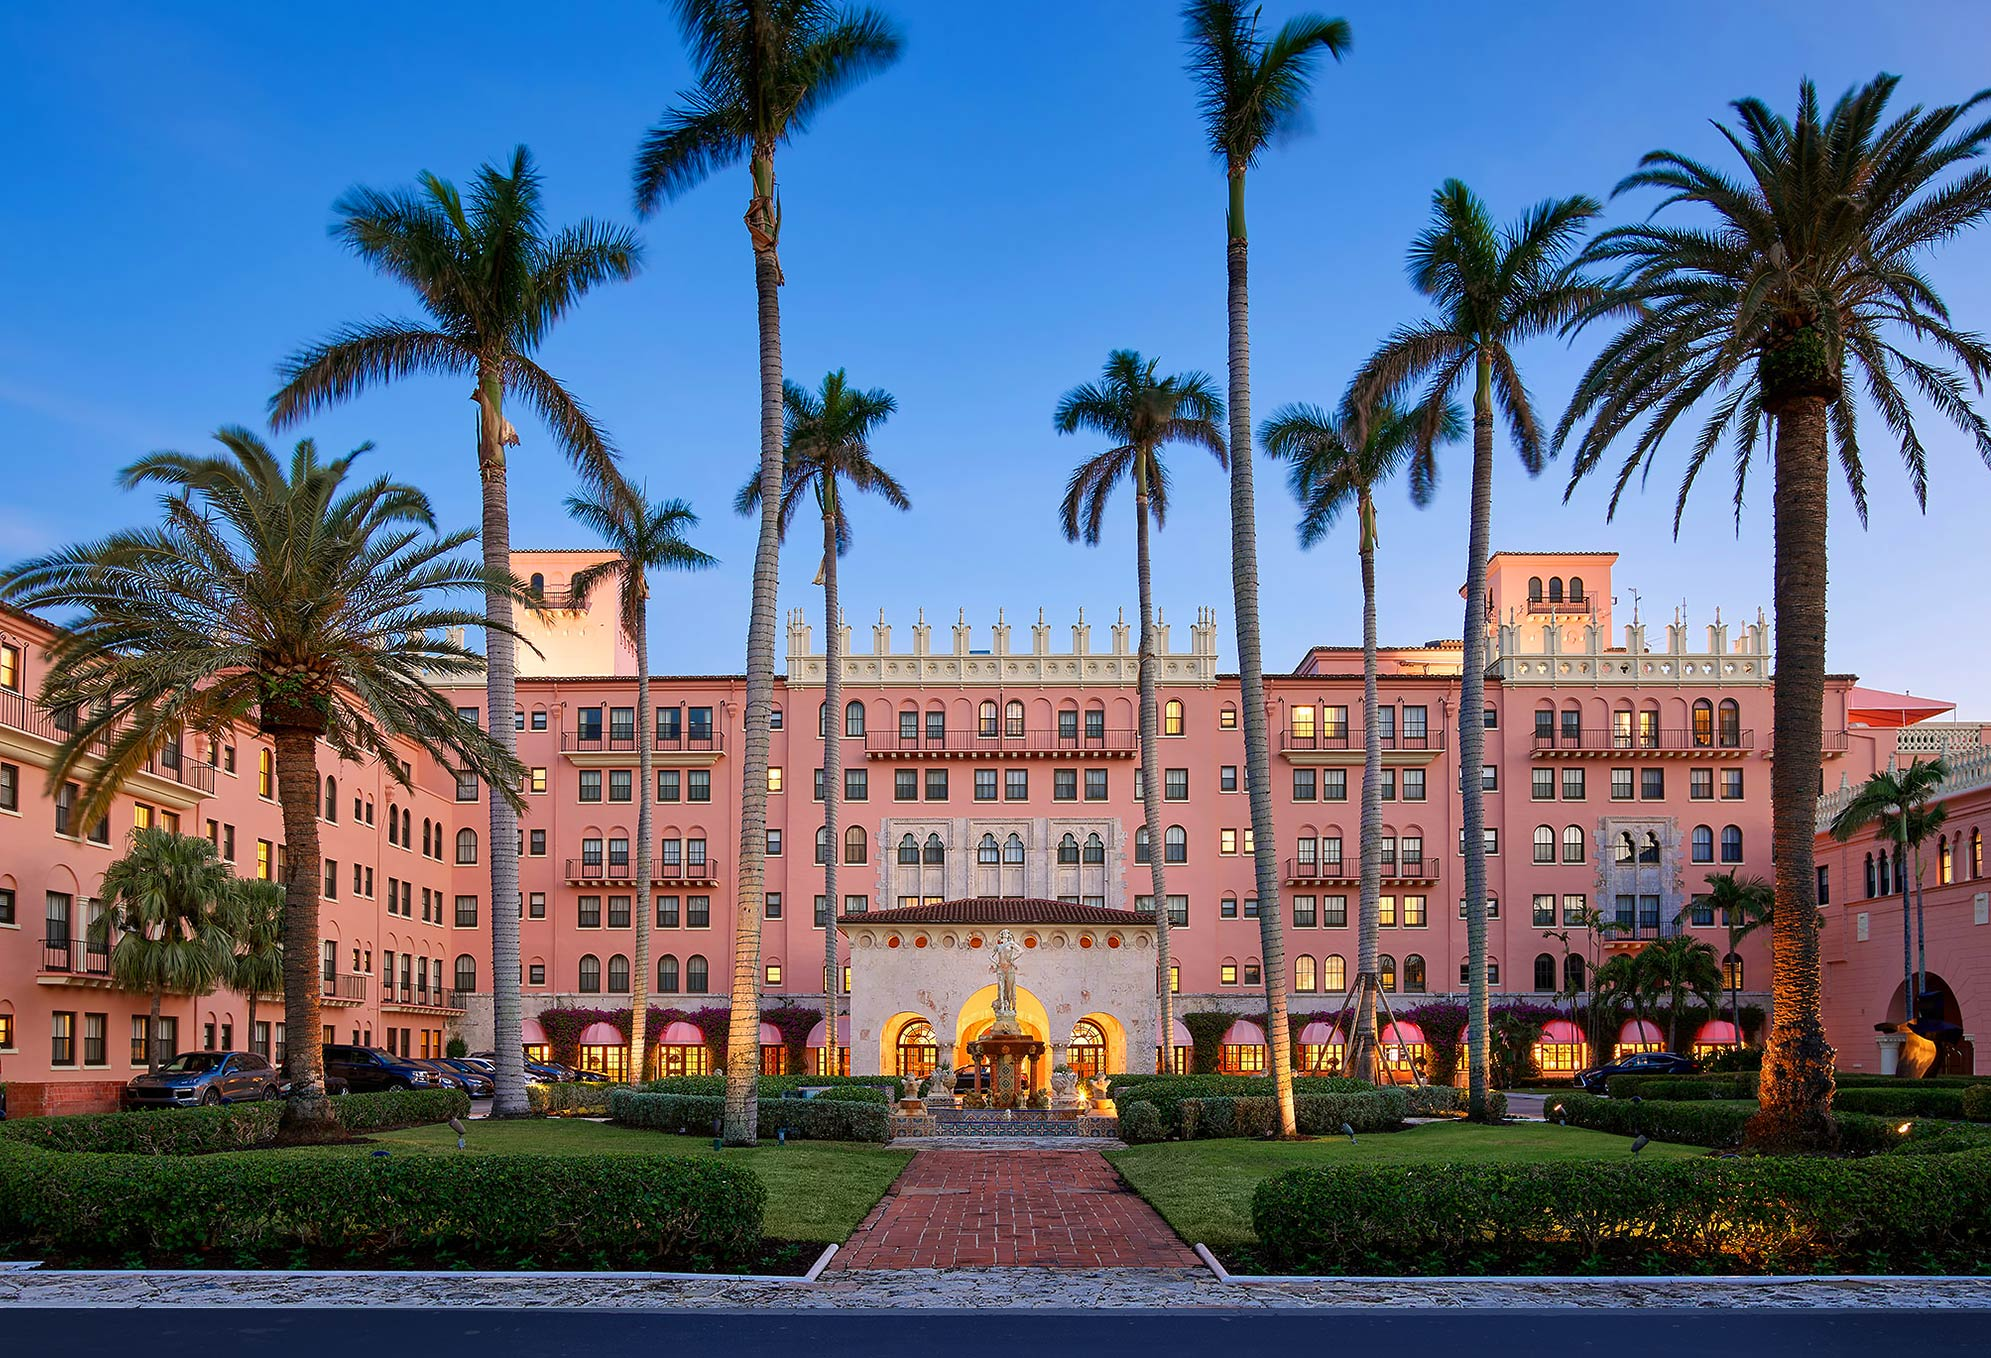 Boca-Raton-Resort-Main-Entrance